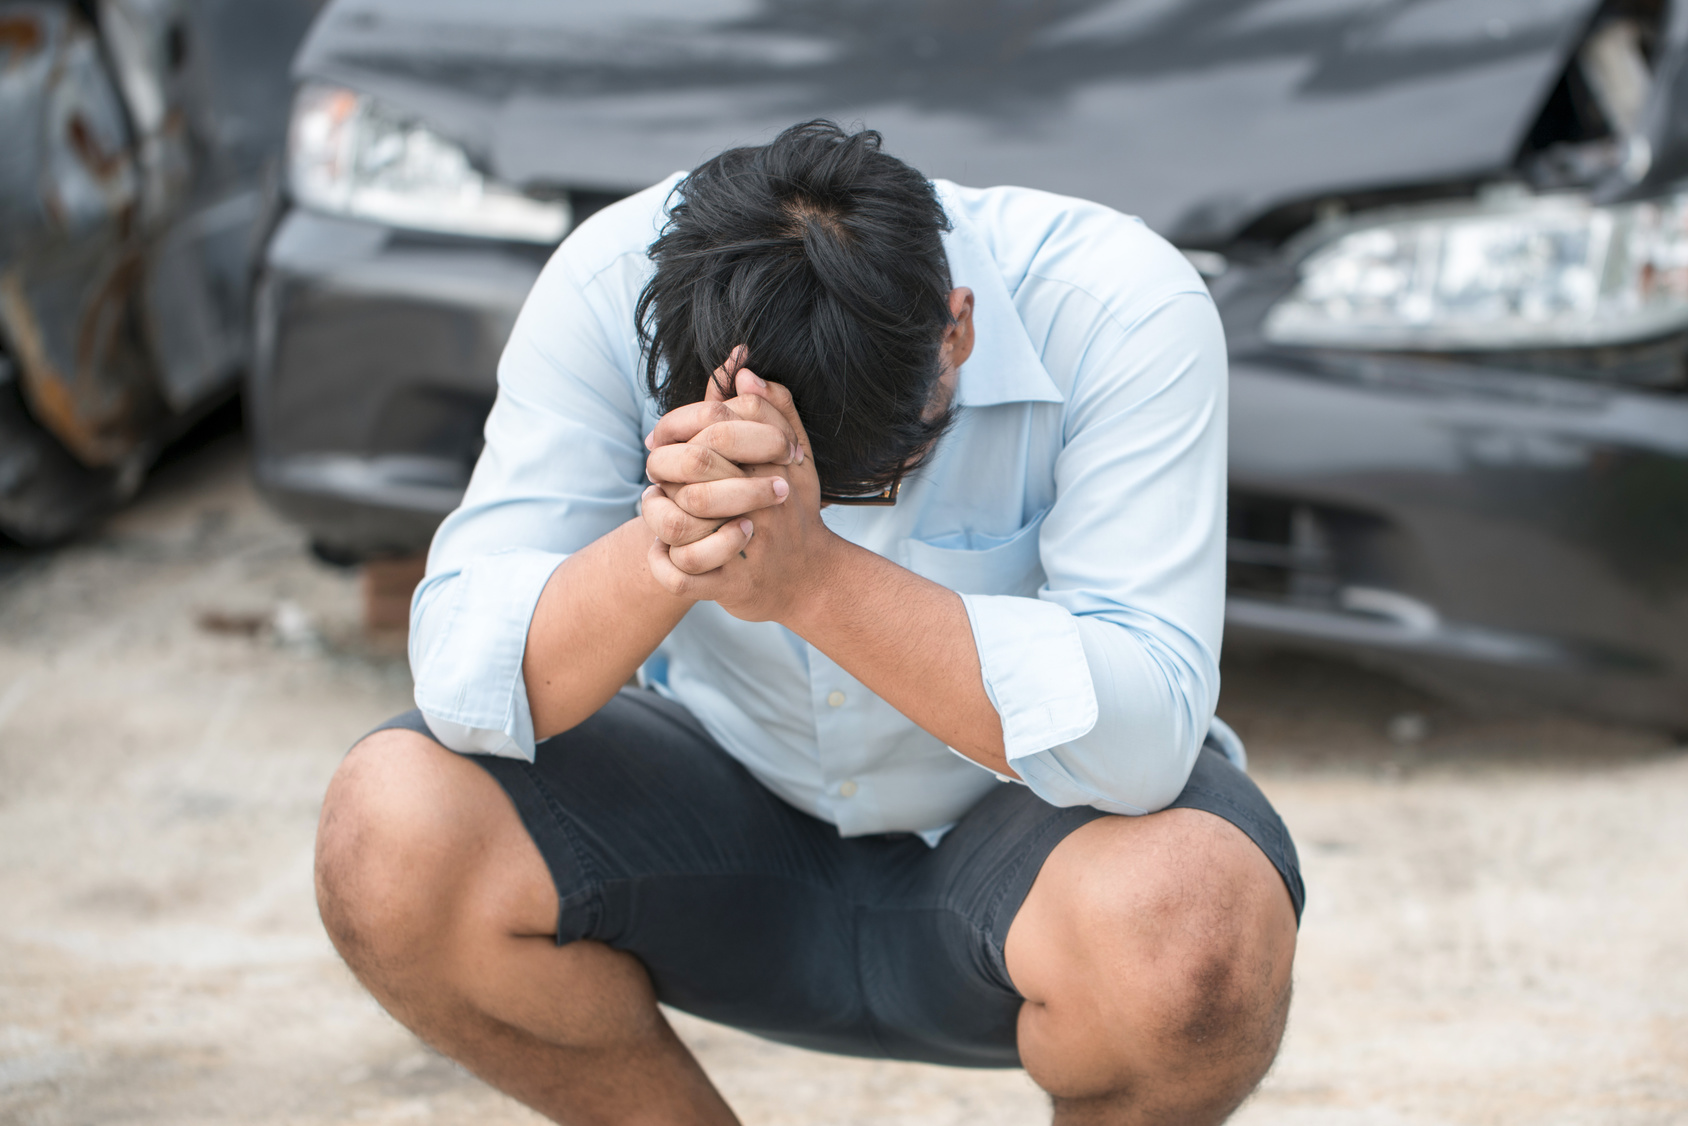 praying guy by crashed car-immediate.jpg